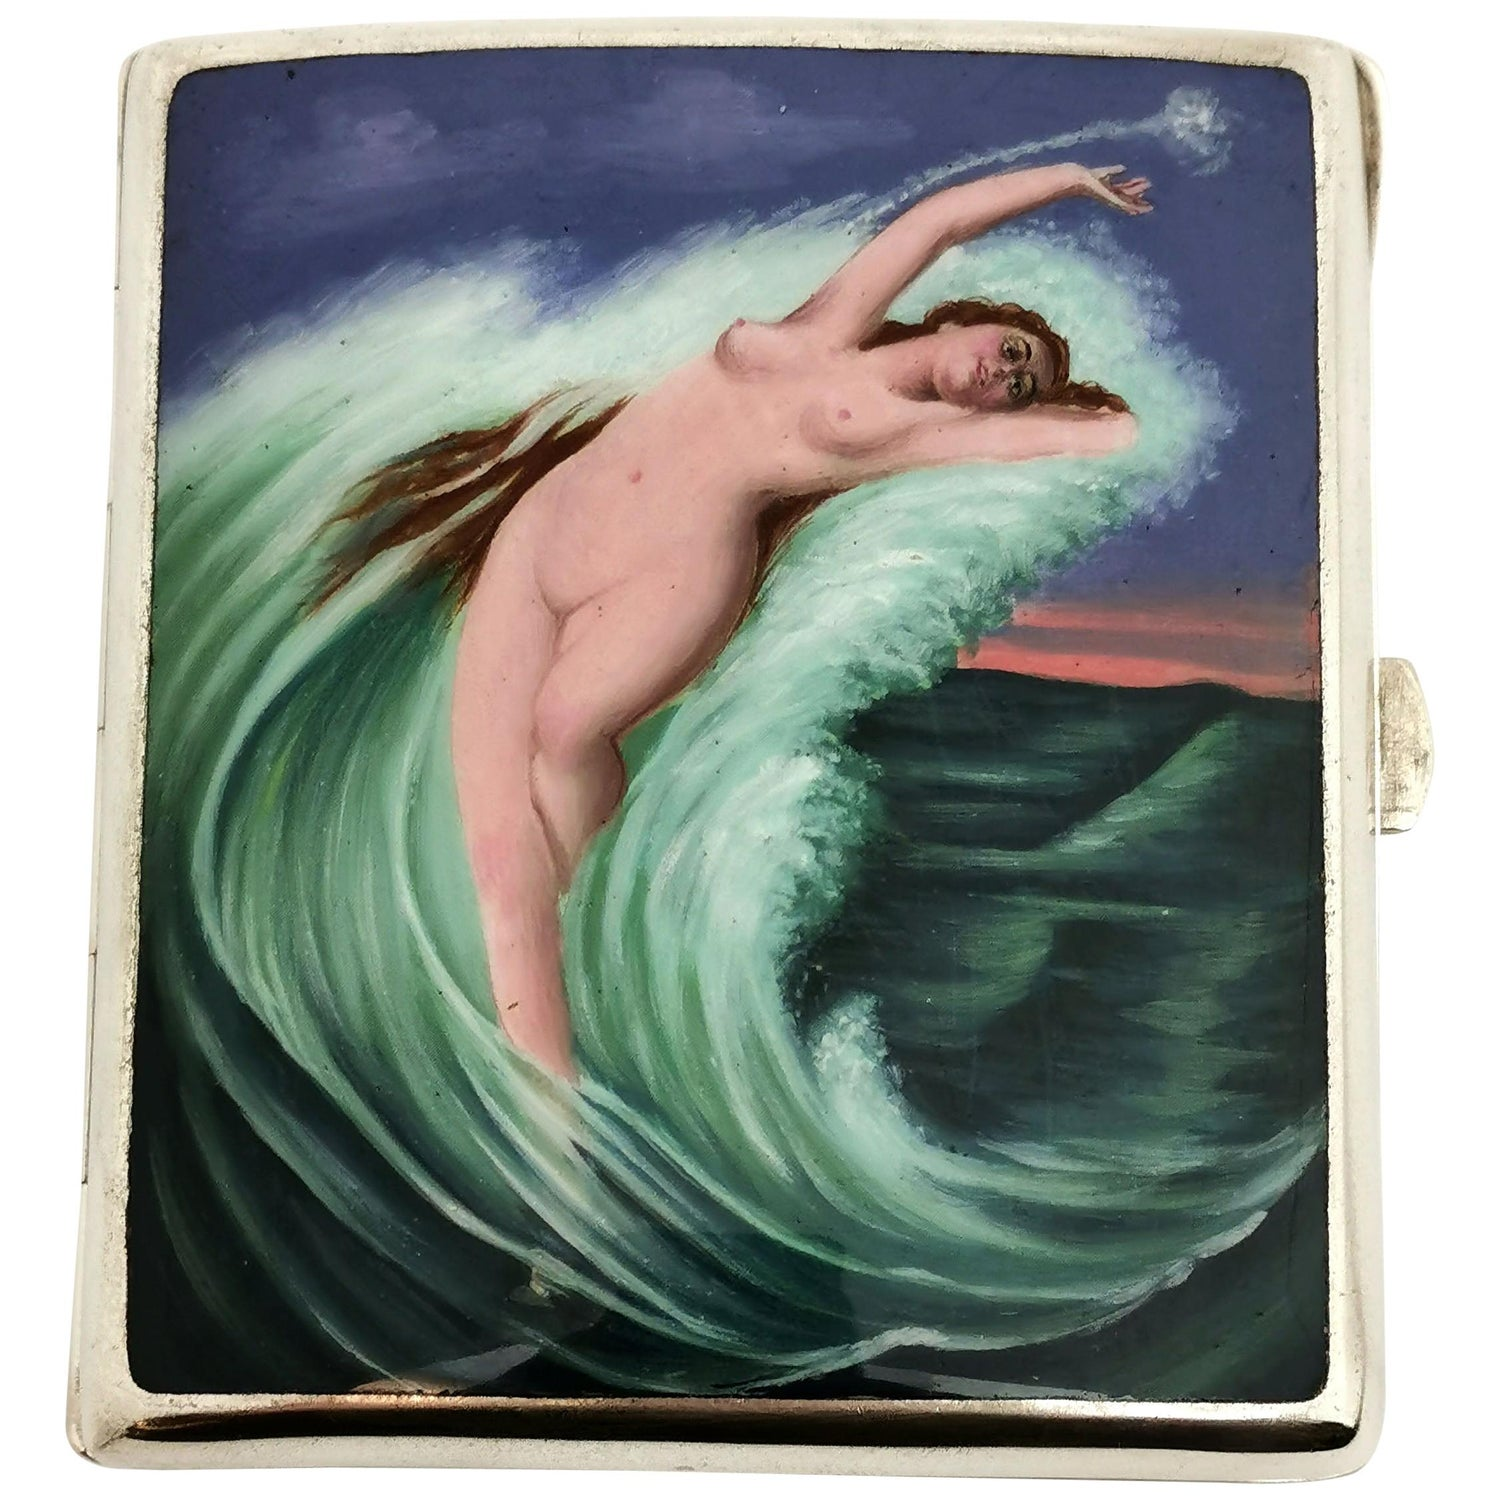 Antique German Silver & Enamel Cigarette Case c 1900 Erotic Nude Sea Ocean